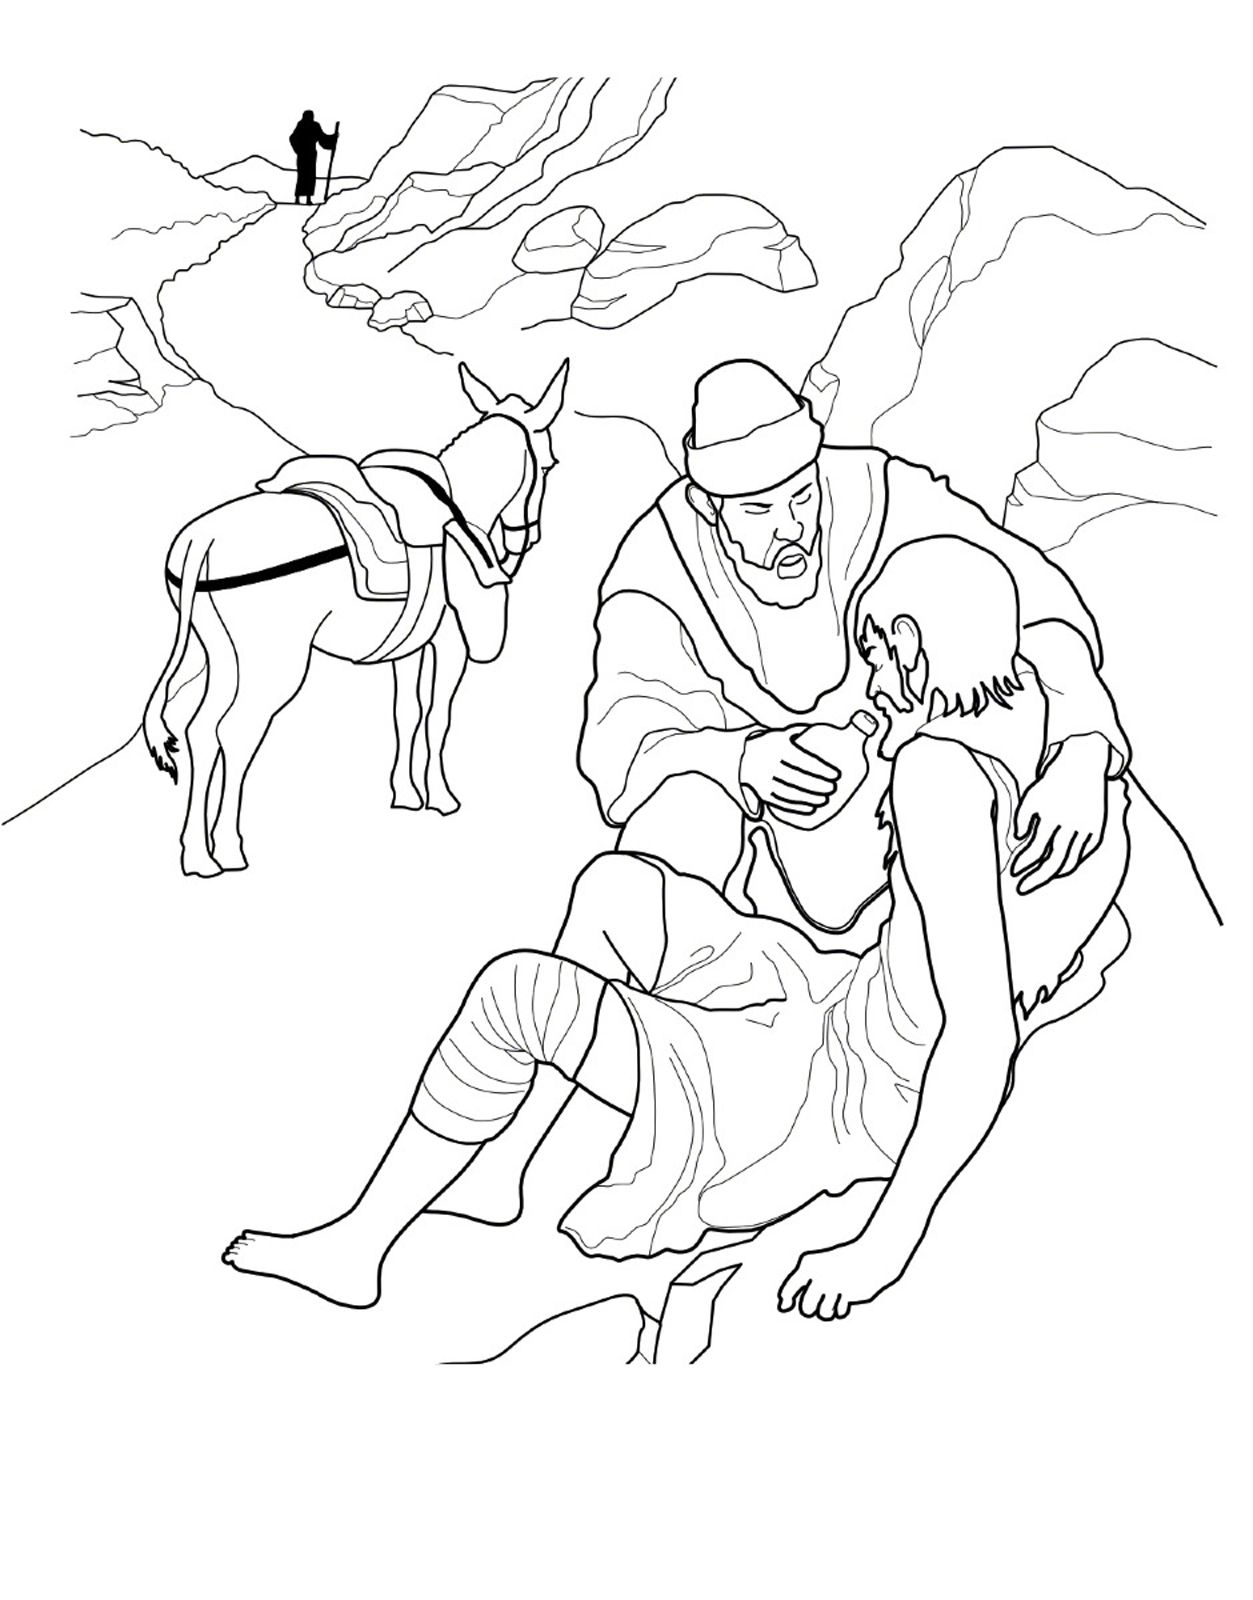 A Coloring Page For Children Of The Good Samaritan From